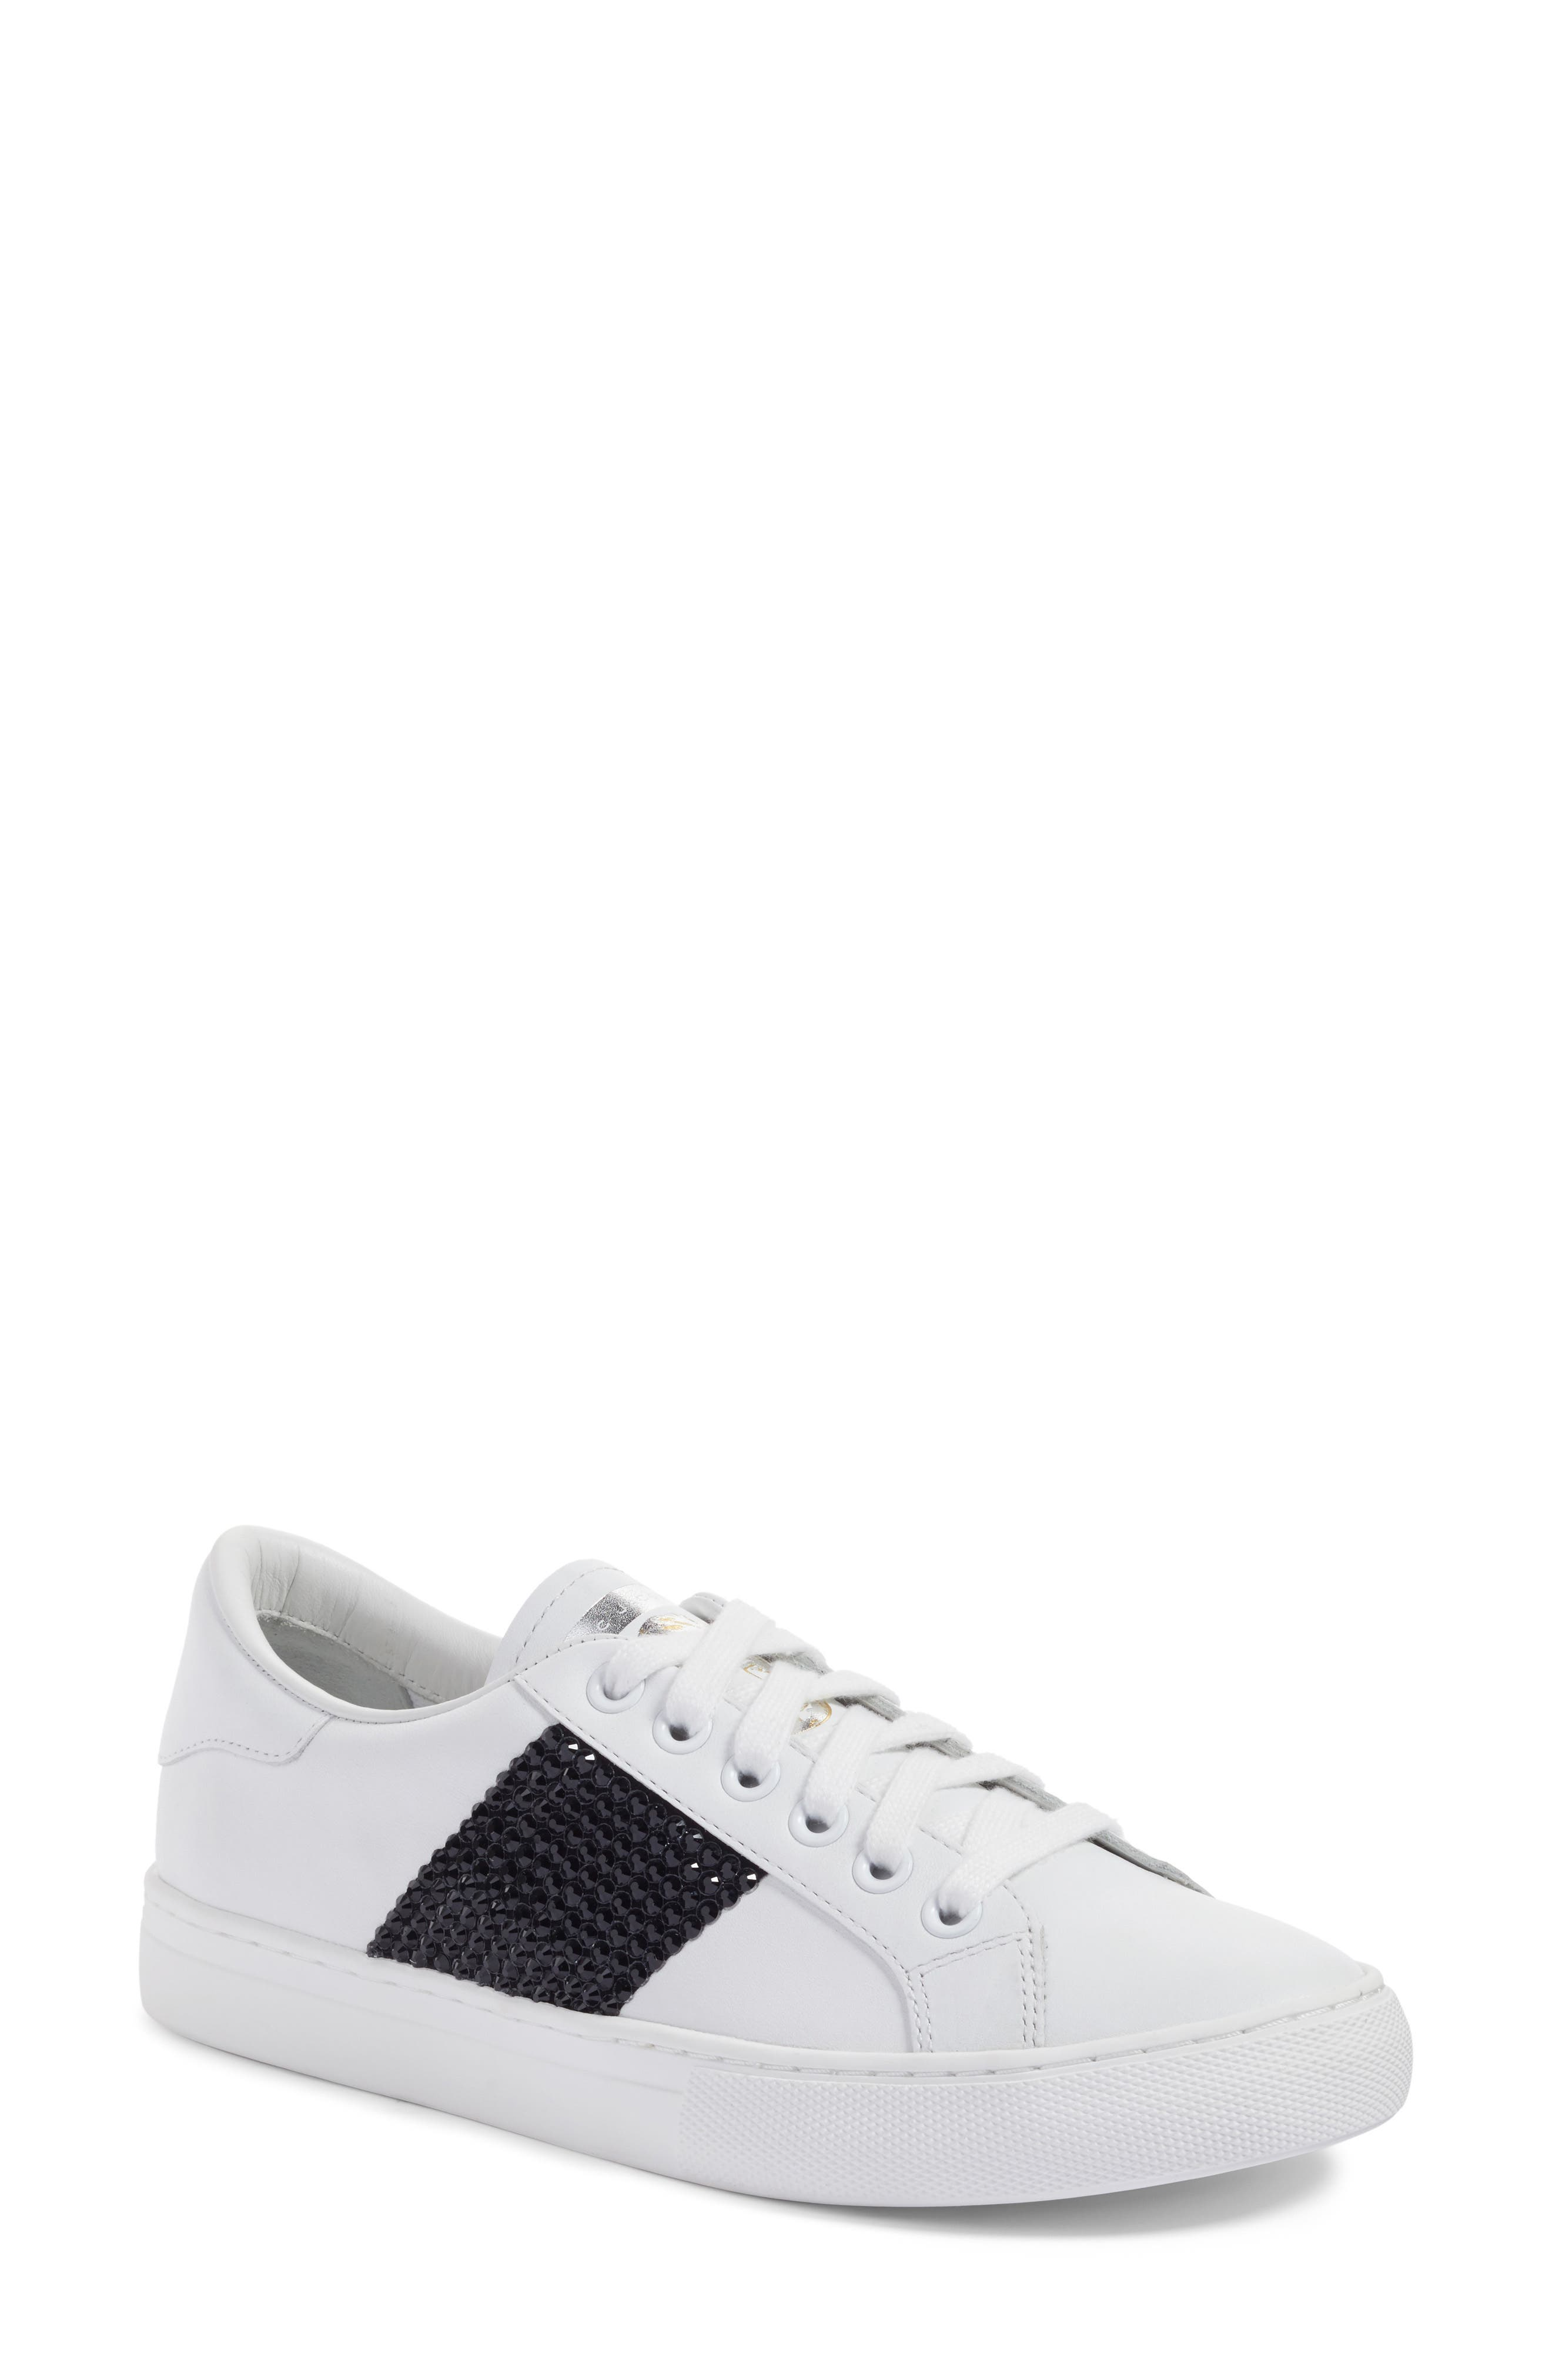 Empire Embellished Sneaker,                             Main thumbnail 1, color,                             160